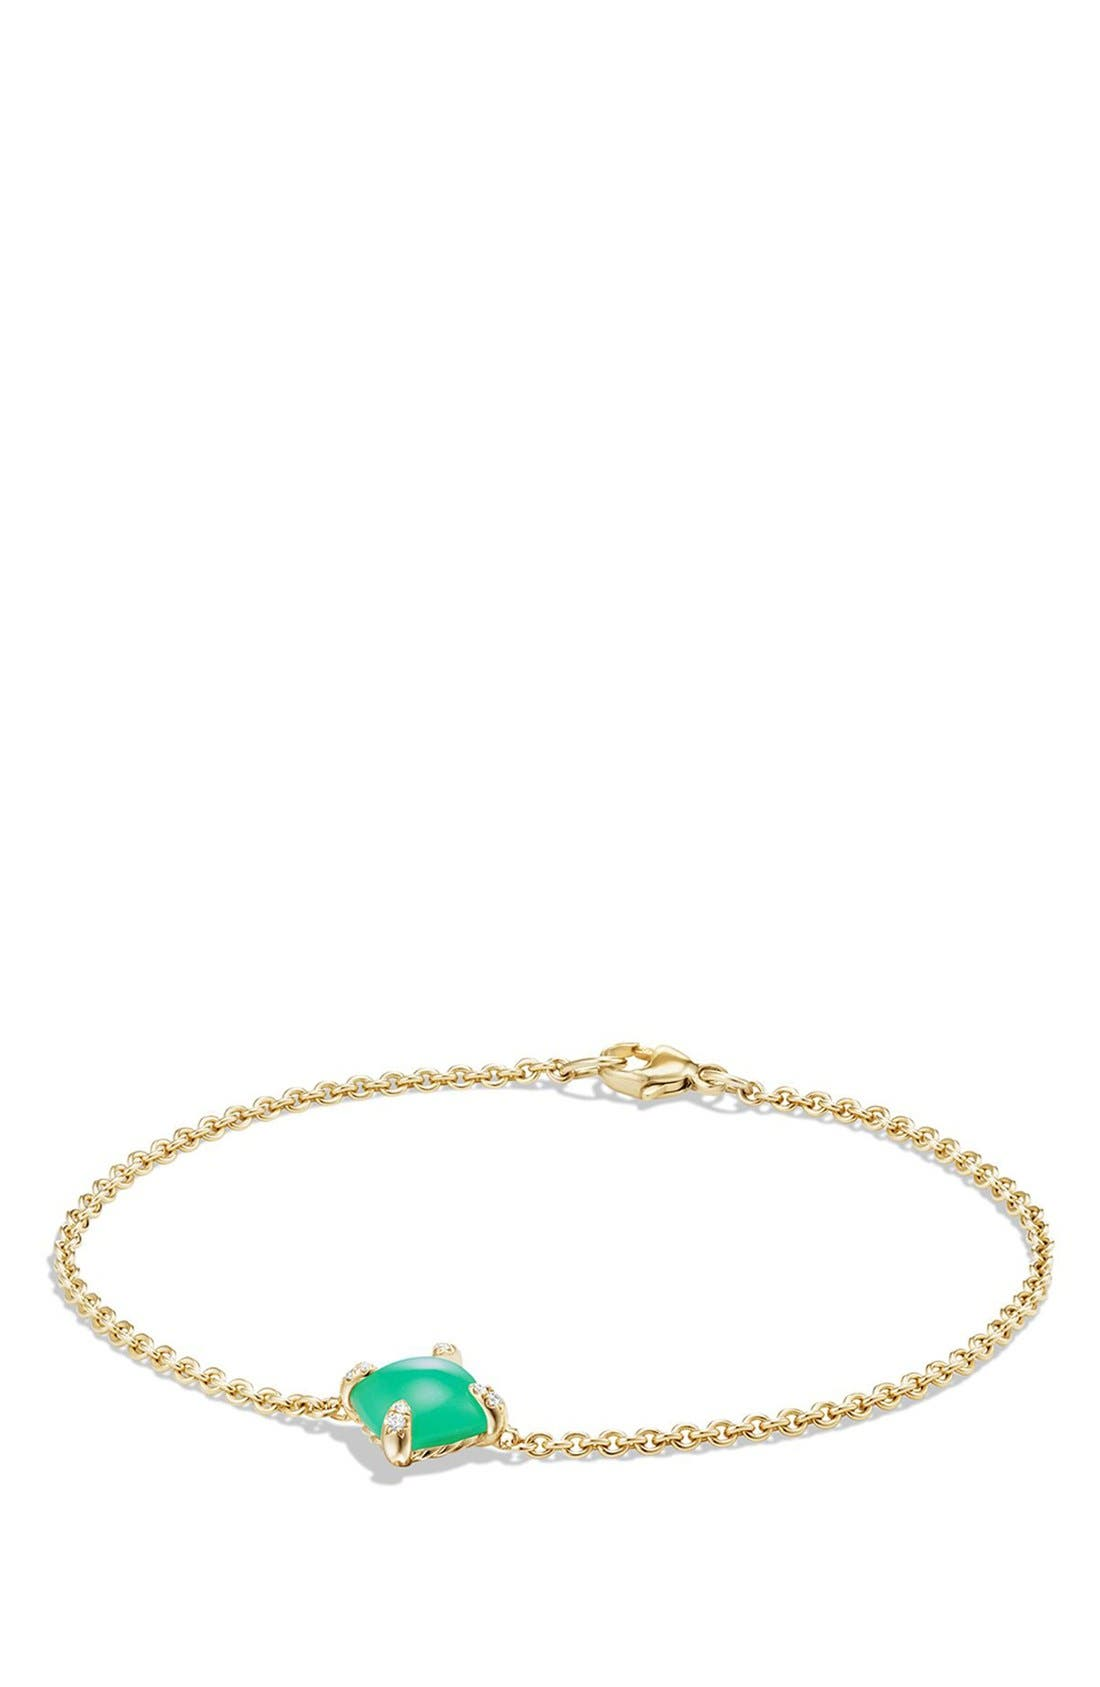 'Châtelaine' Bracelet with Diamonds in 18K Gold,                         Main,                         color, CHRYSOPRASE